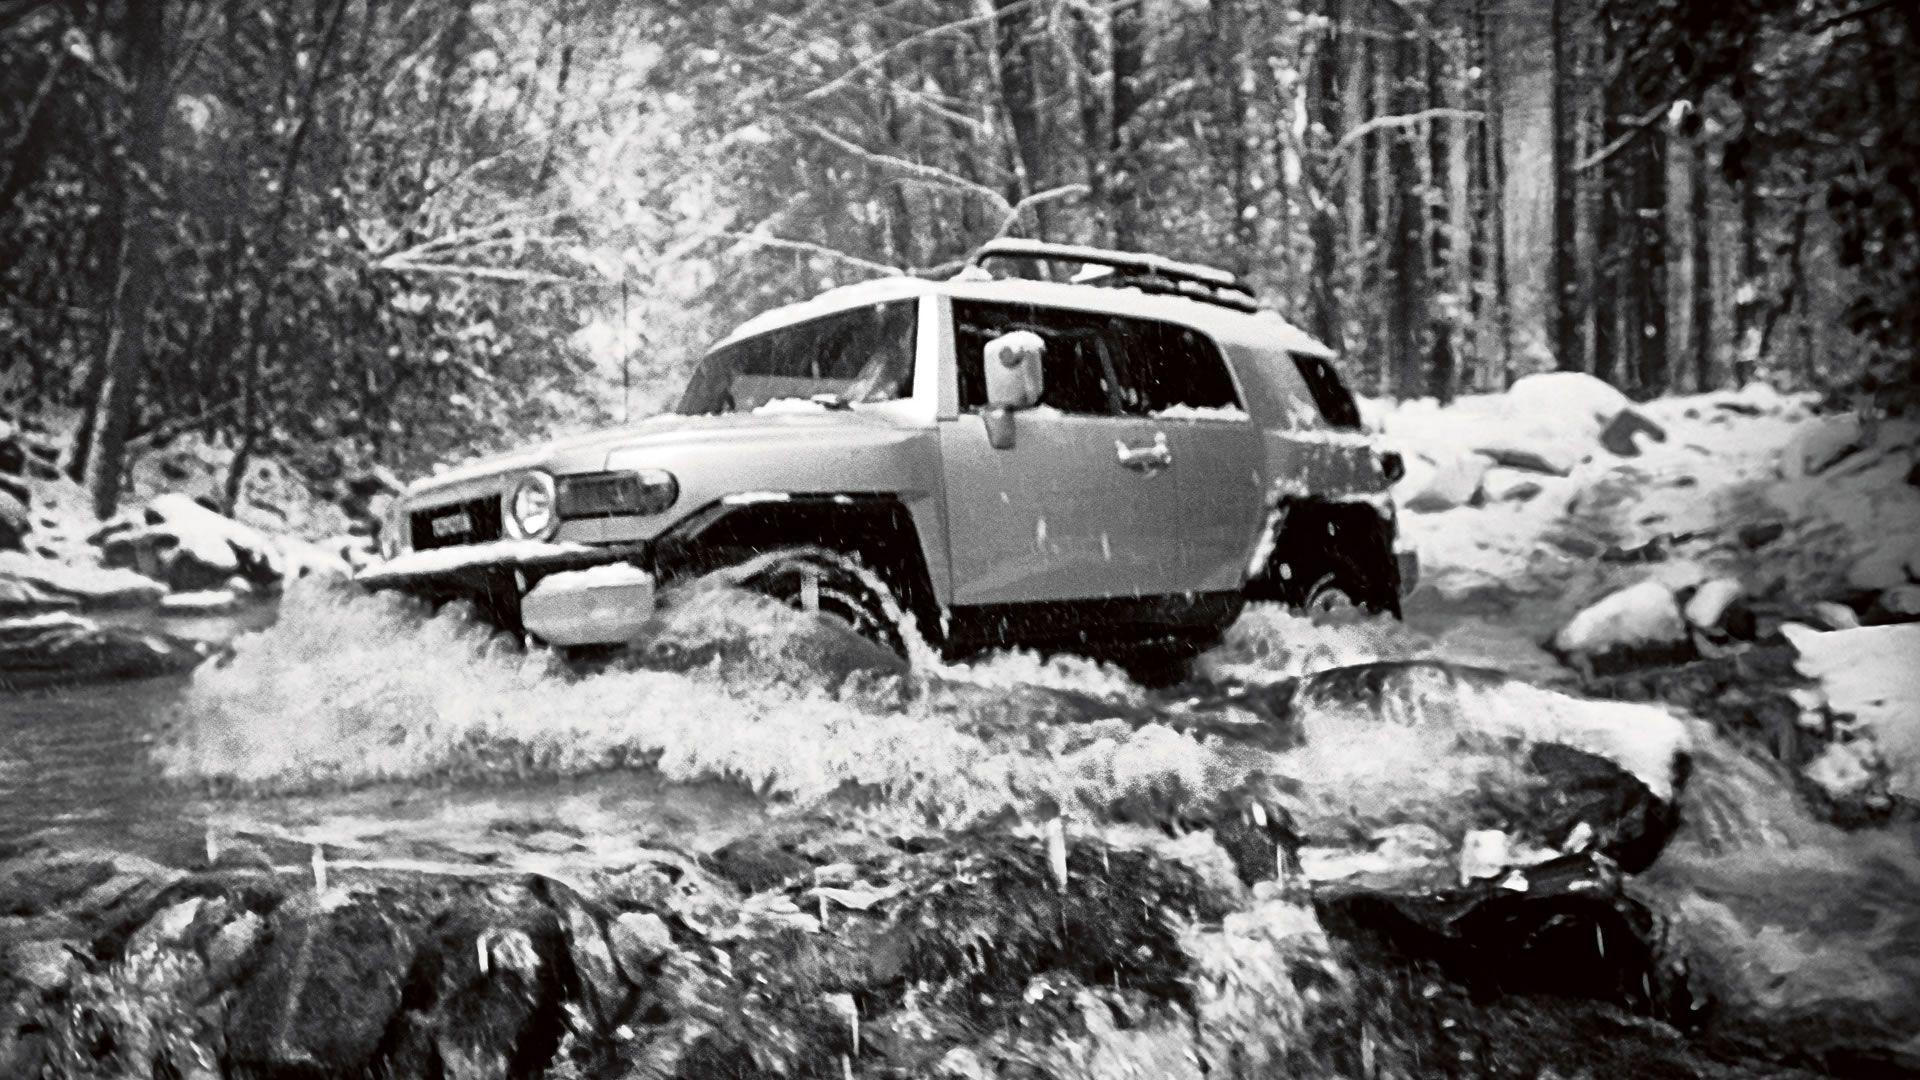 FJ Cruiser Wallpapers  Wallpaper Cave